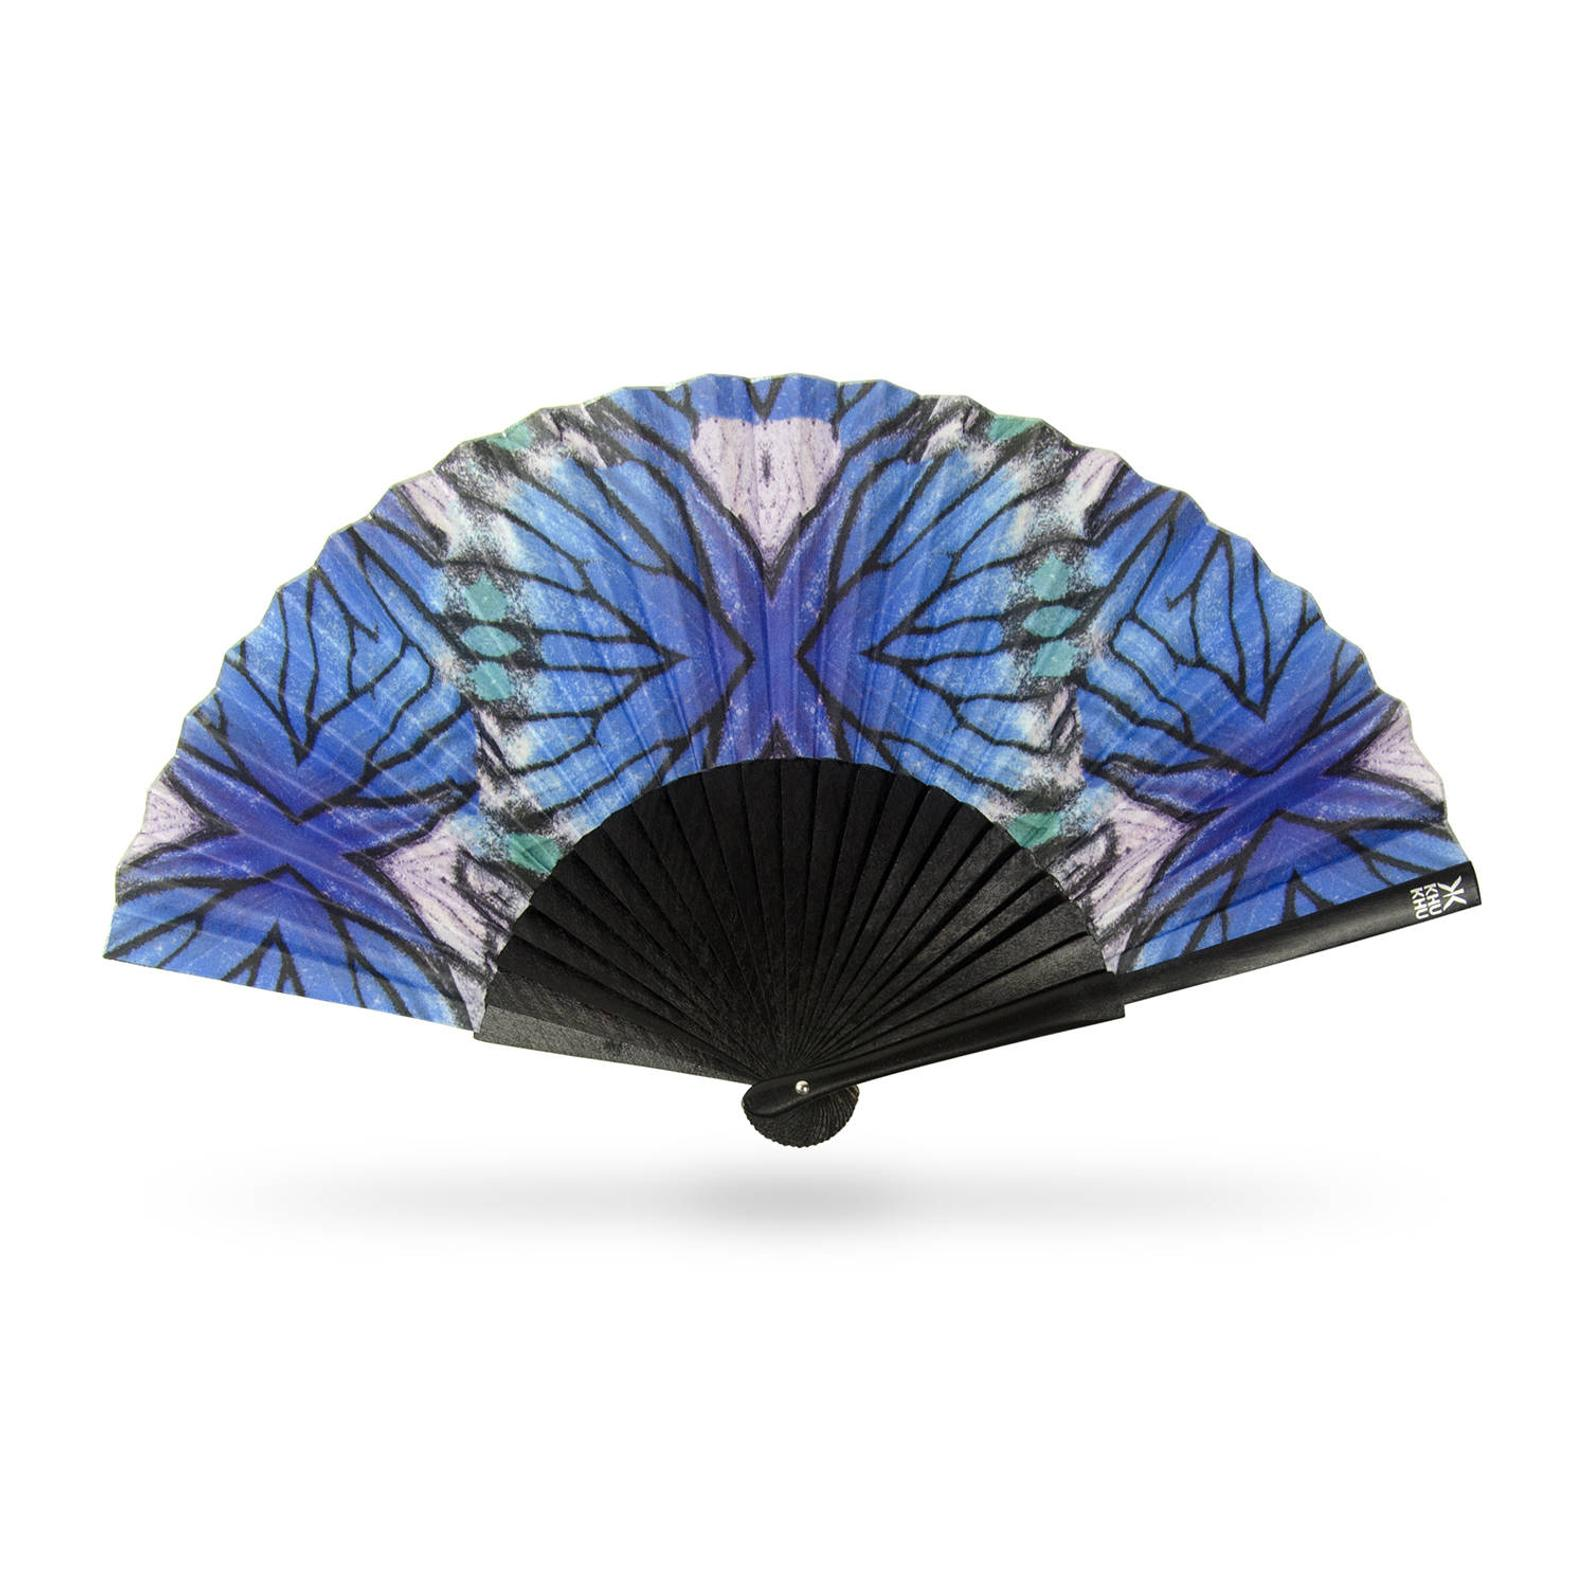 combat menopause on the go, Khu Khu London Blue Lyca hand fan with blue, white and black design and black handle